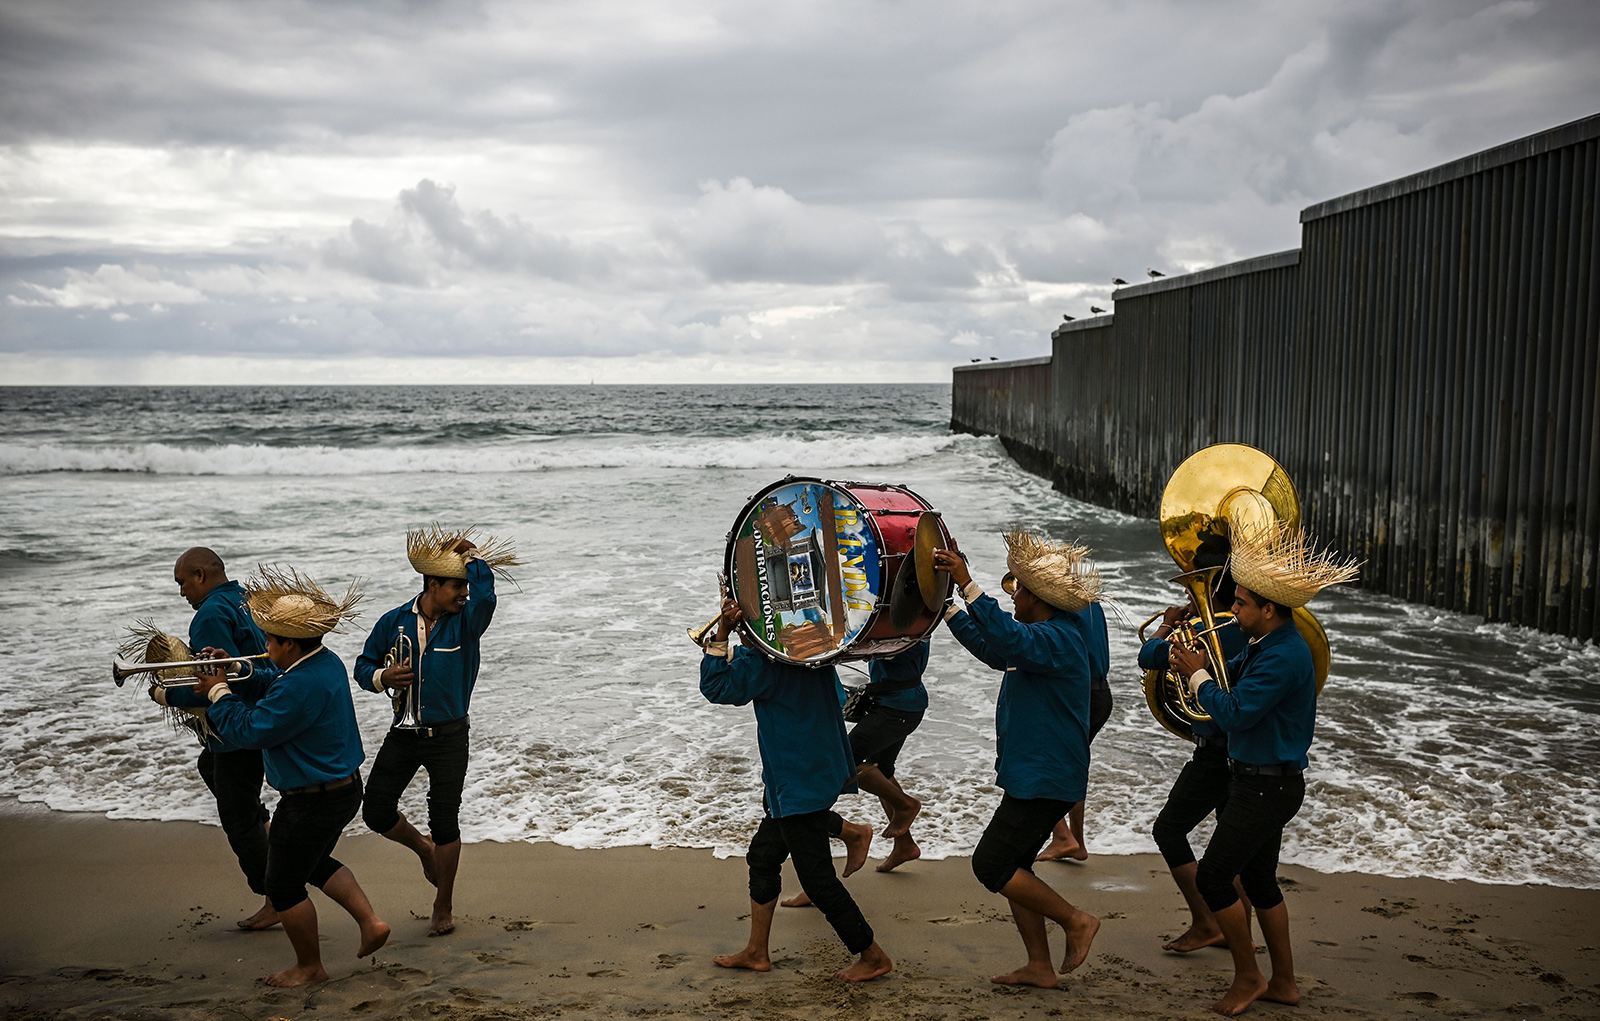 Mexican traditional musicians from Oaxaca State play music and dance on the beach at Playas de Tijuana in Tijuana near a section of the U.S.-Mexico border fence on April 29. RONALDO SCHEMIDT/AFP/Getty Images